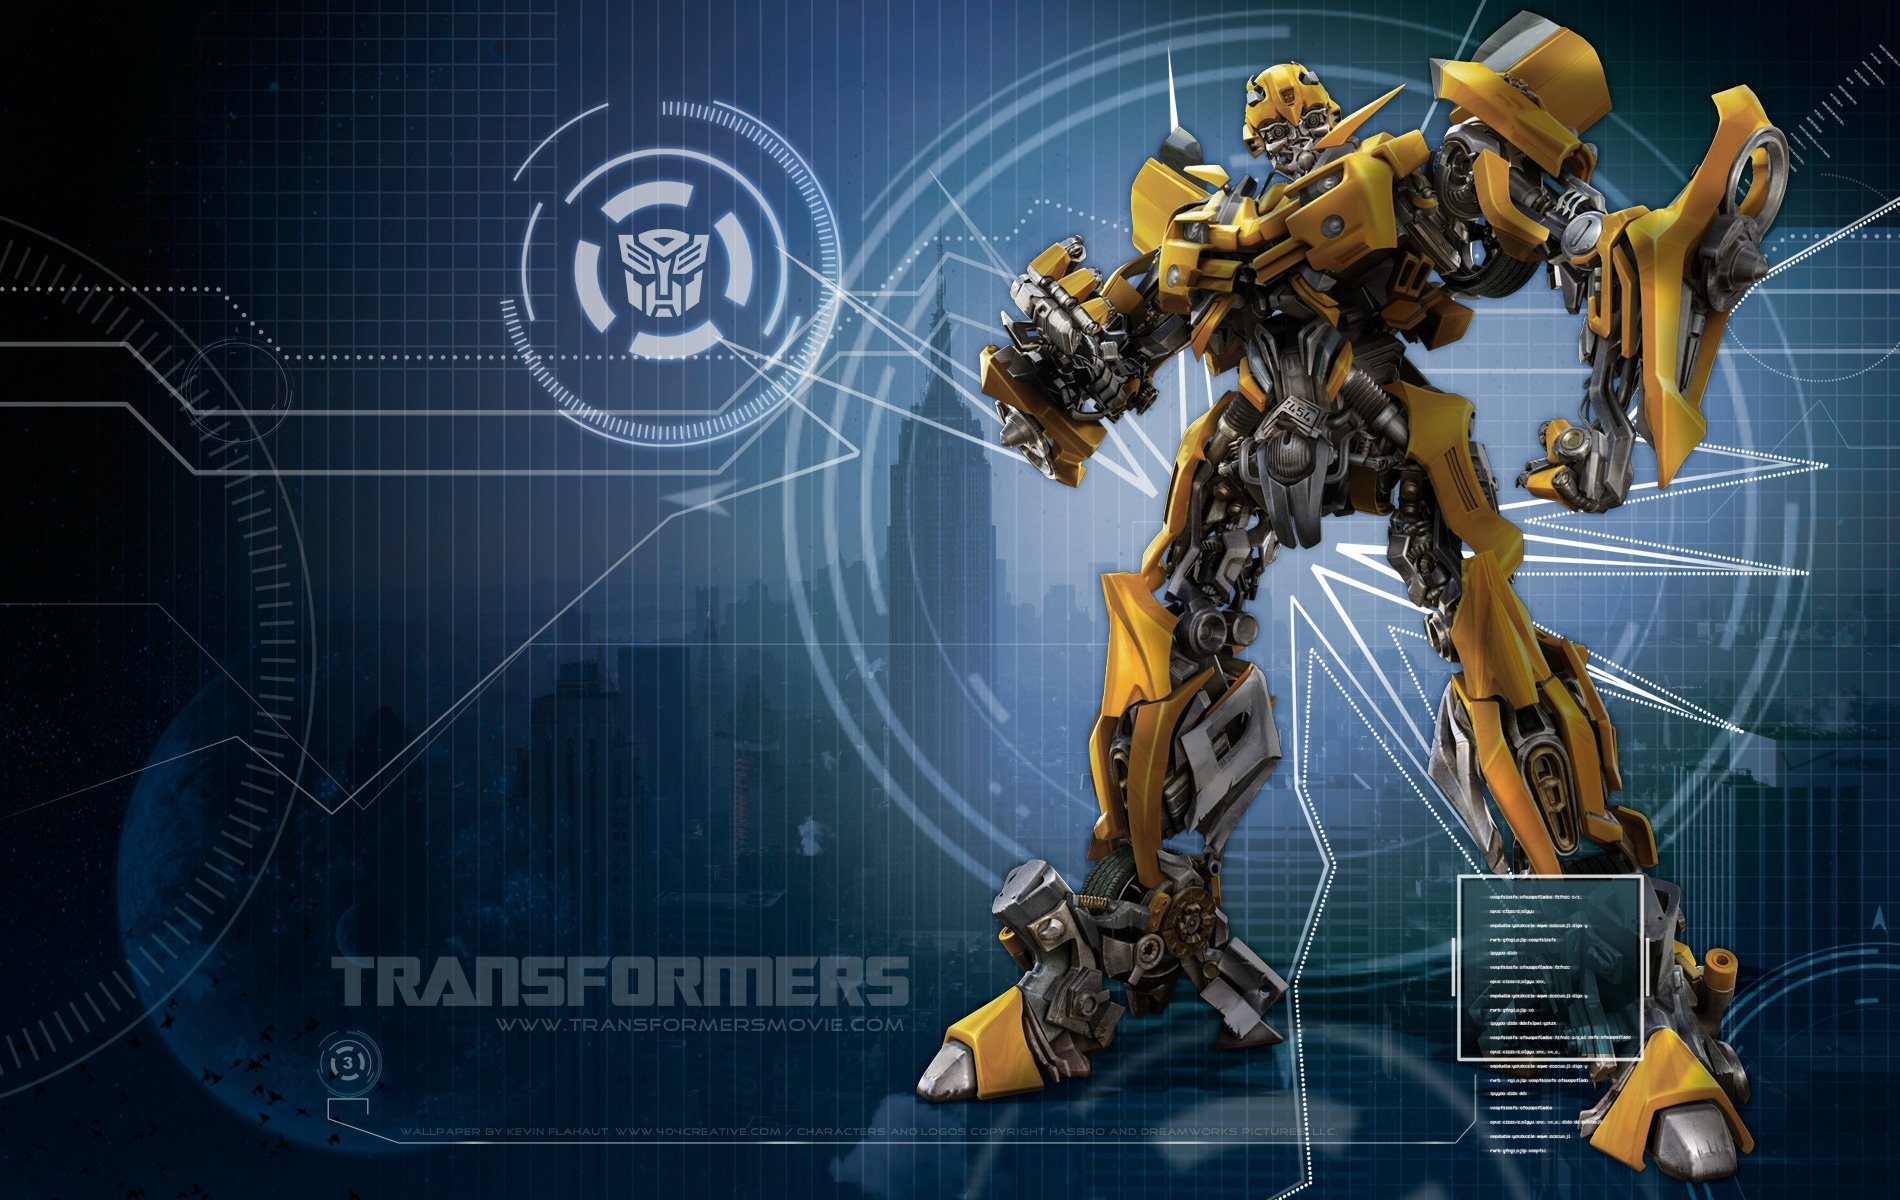 122 transformers hd wallpapers | background images - wallpaper abyss